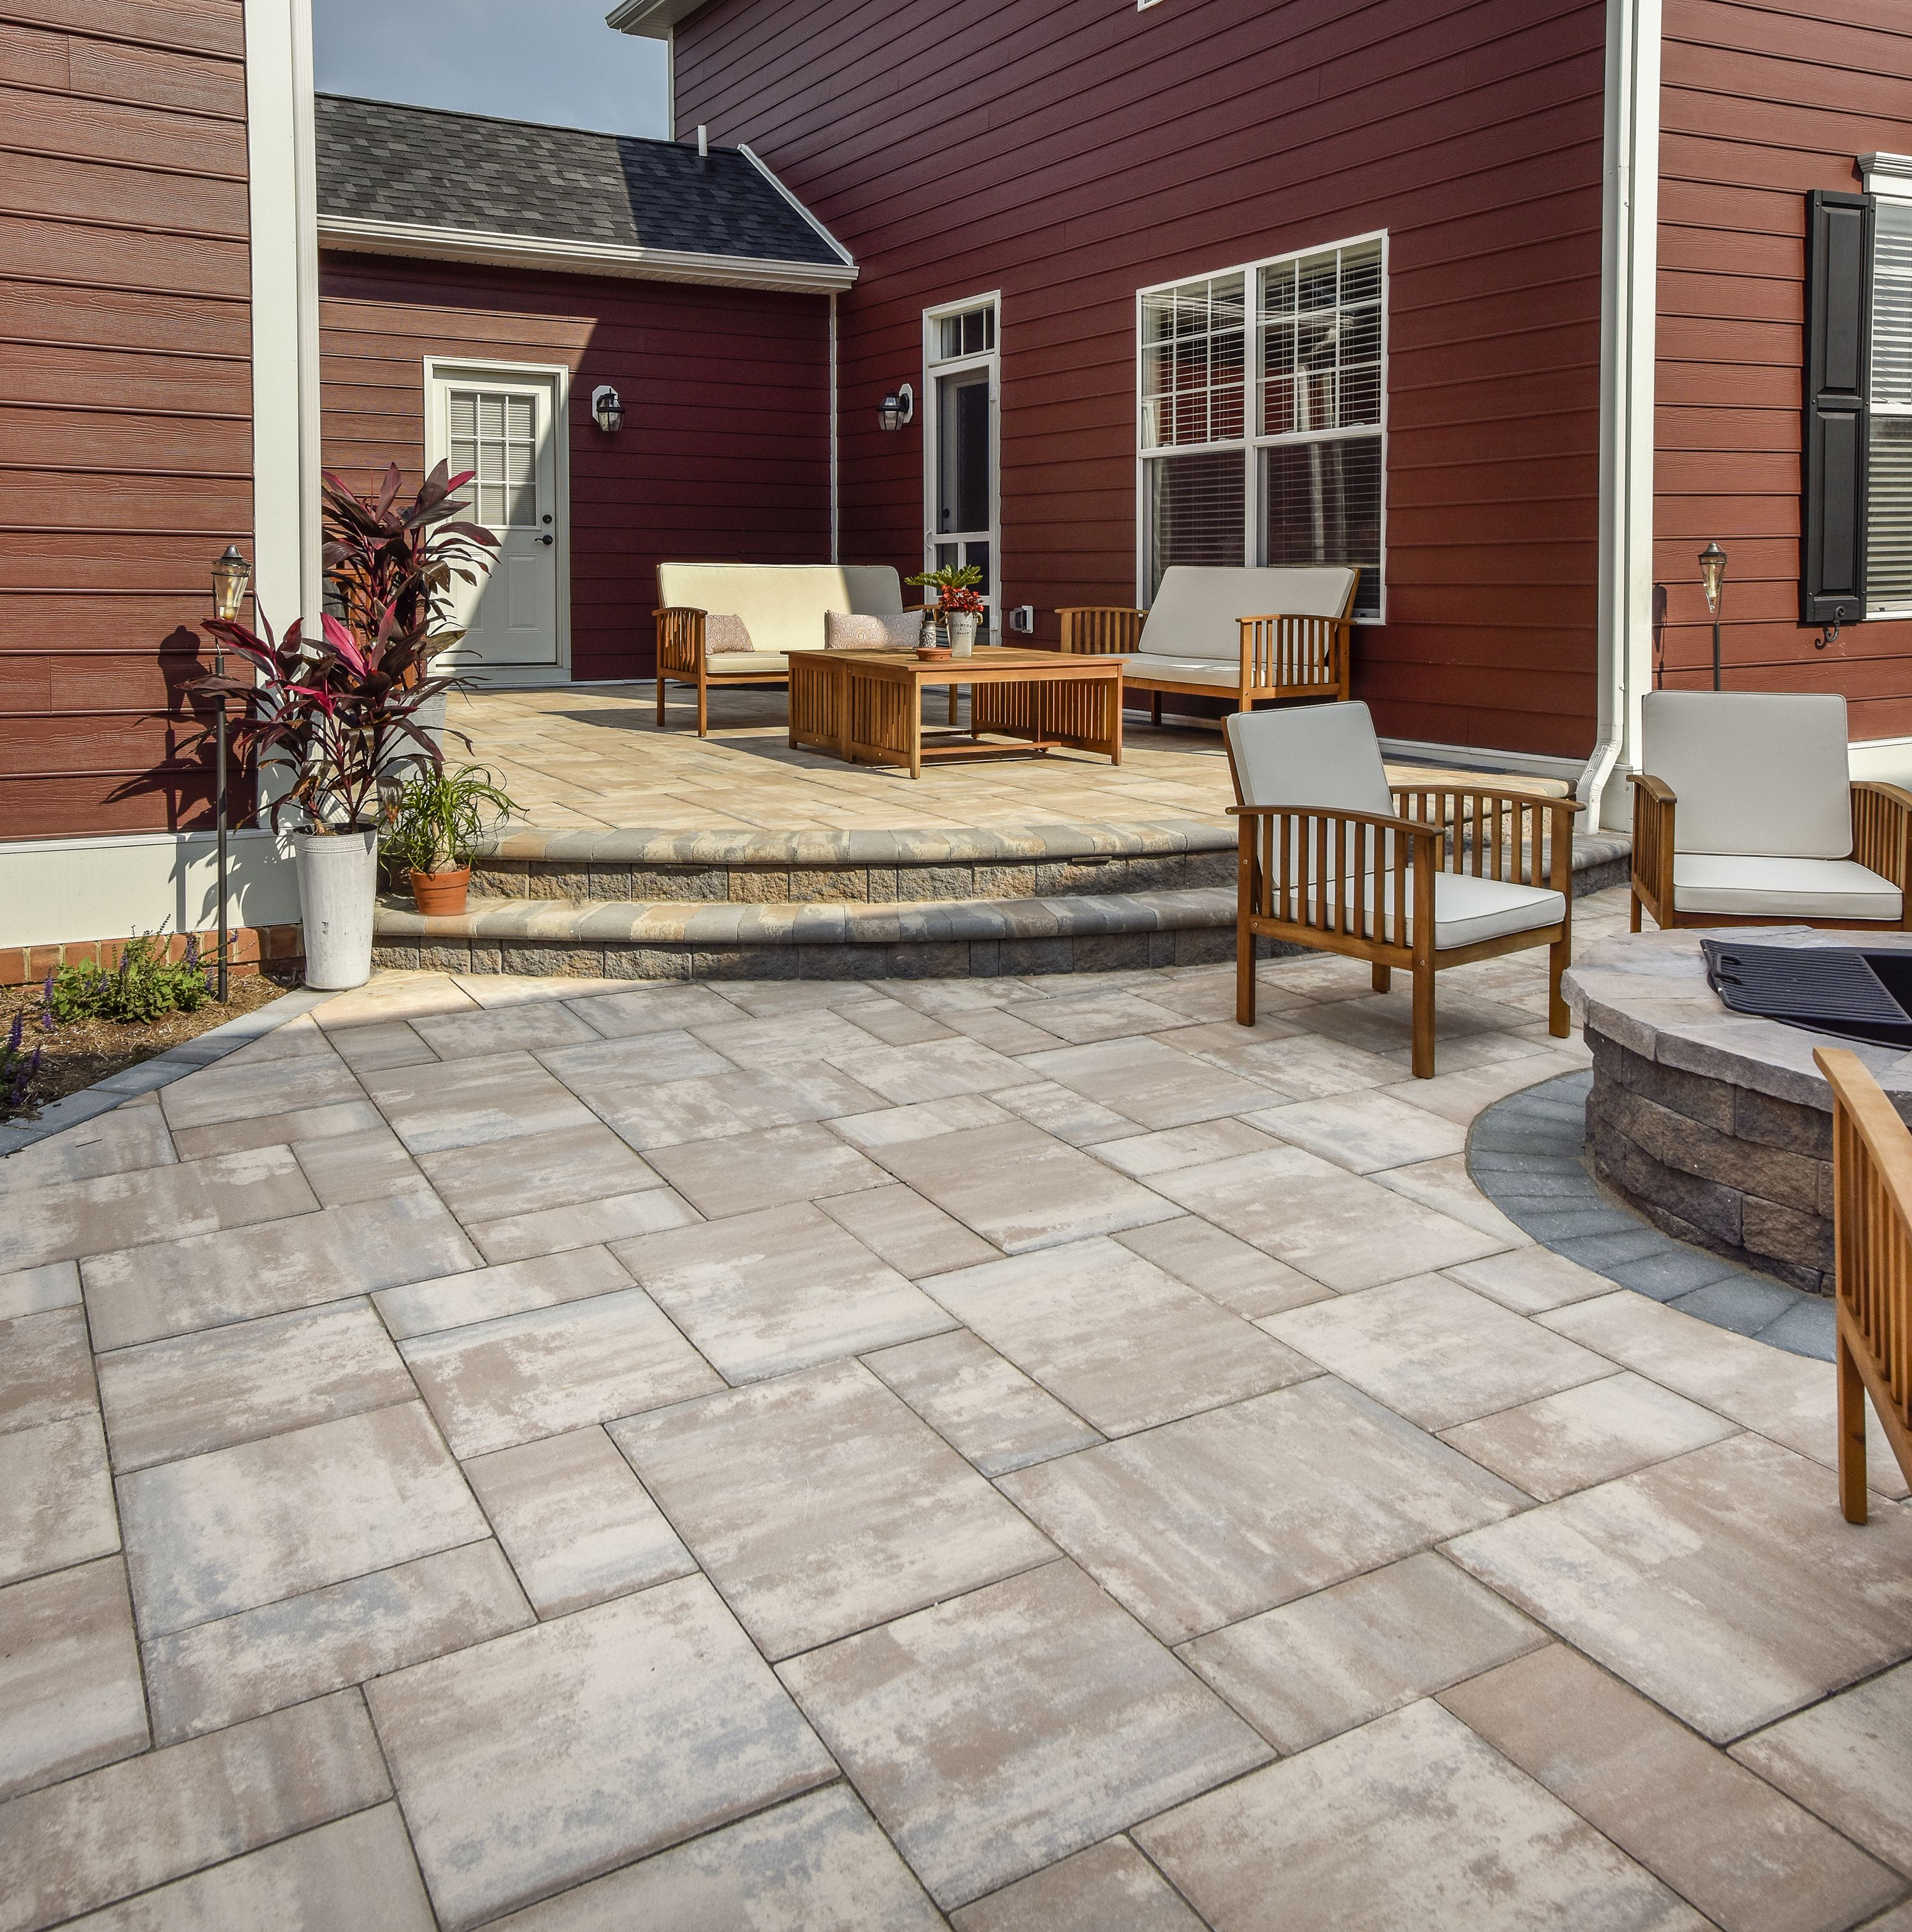 Alpine Contemporary Shown In Chesapeake Blend Nicolock Paving